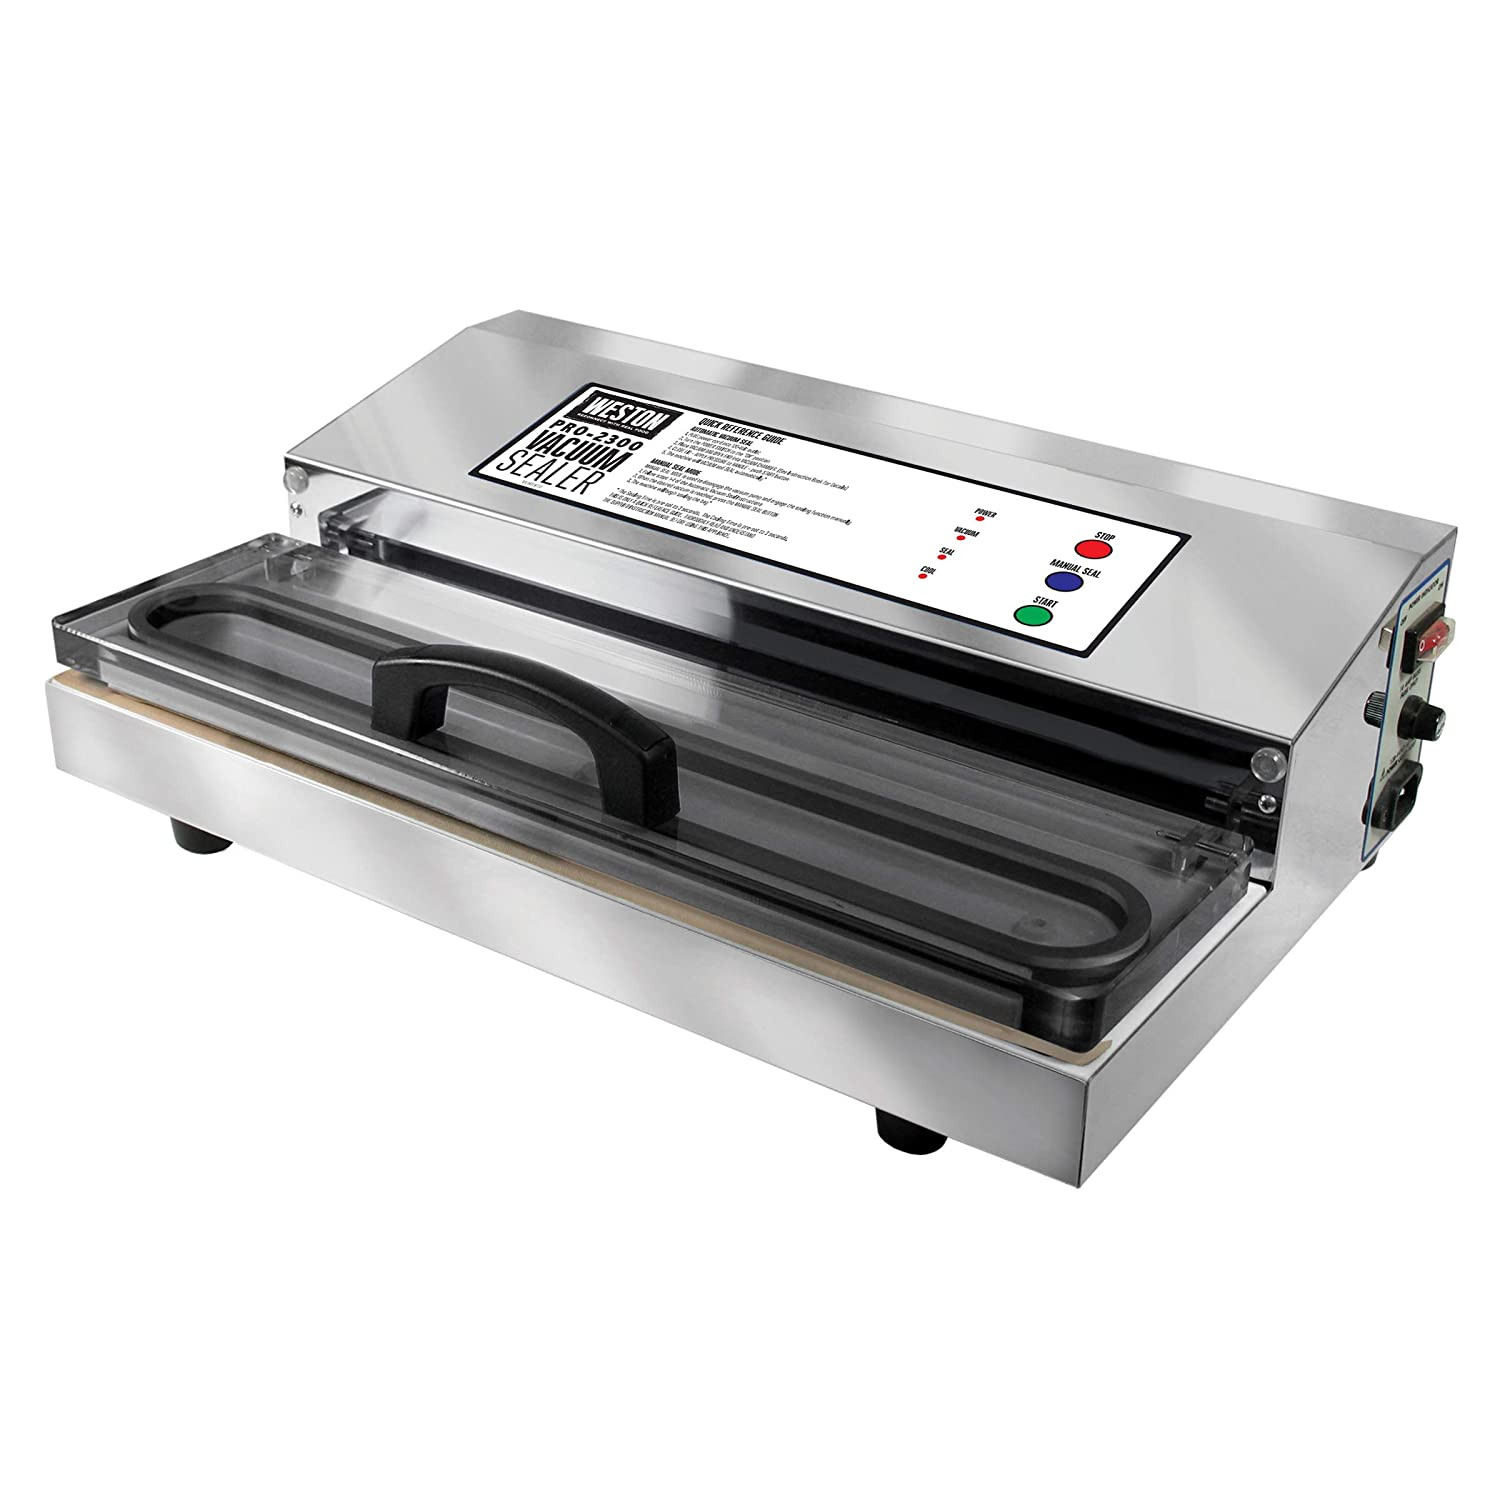 Weston pro-2300 vacuum sealer consumer report